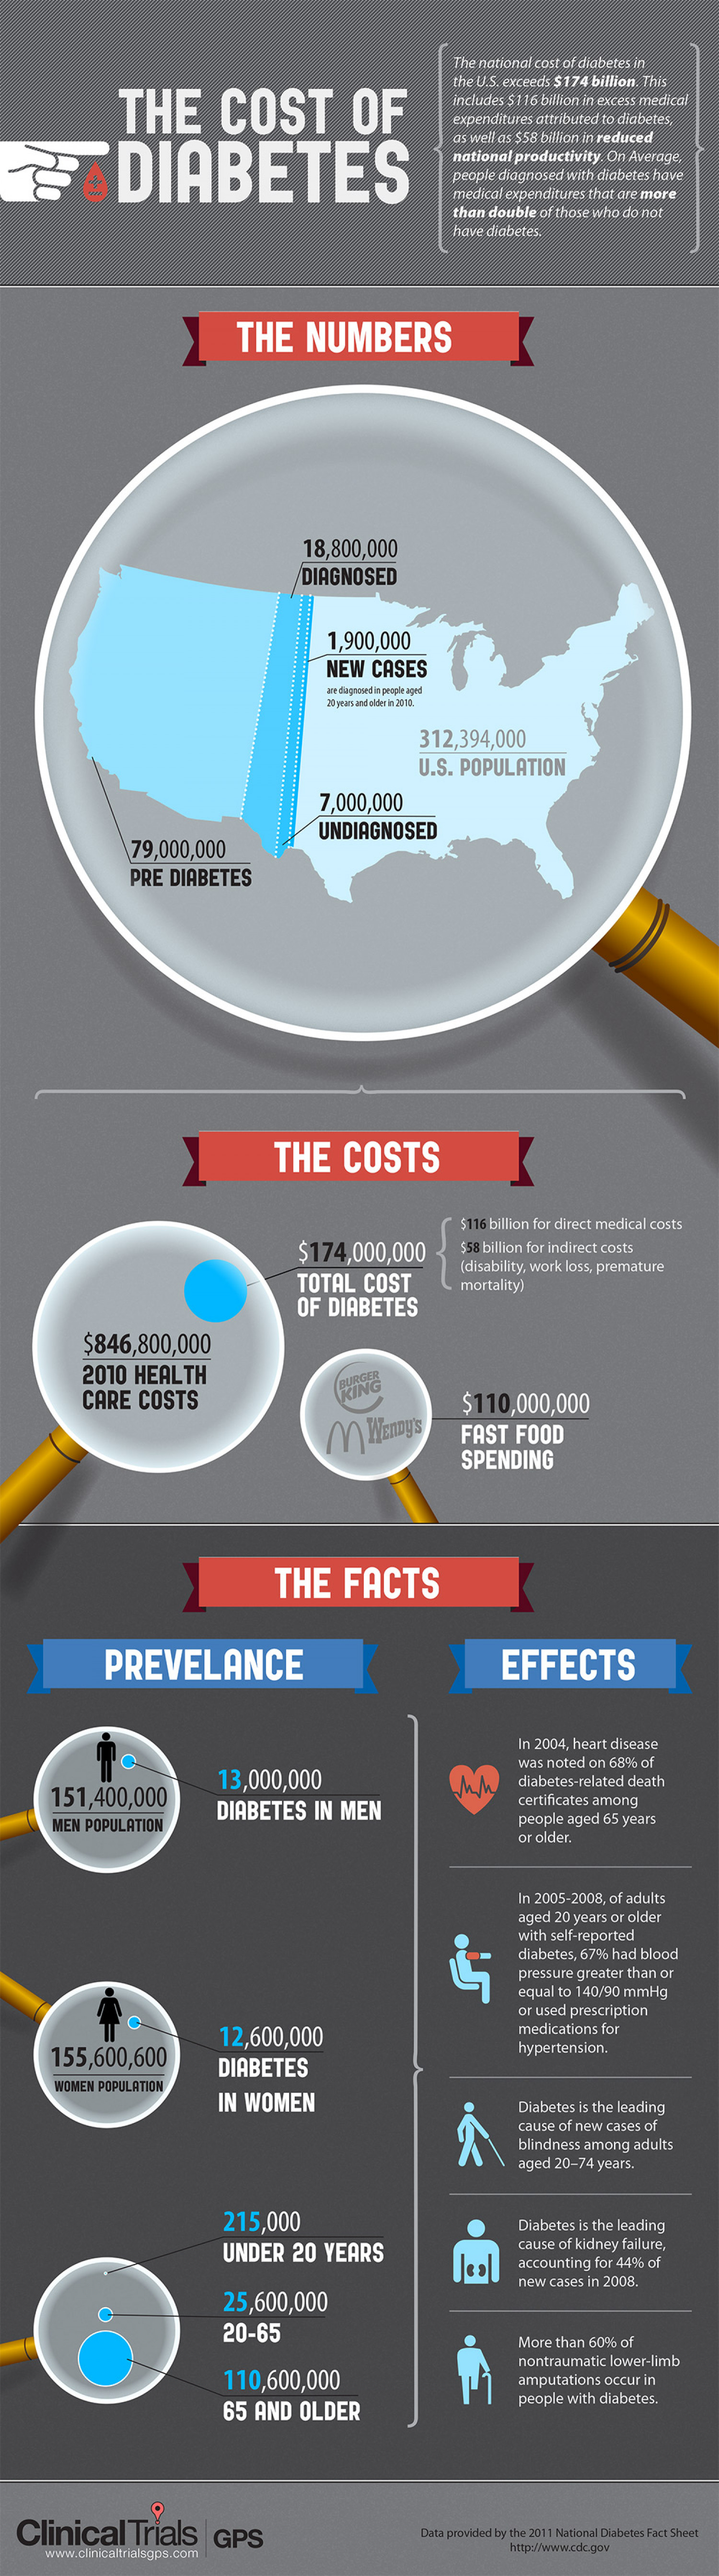 The Rising Cost of Diabetes Infographic